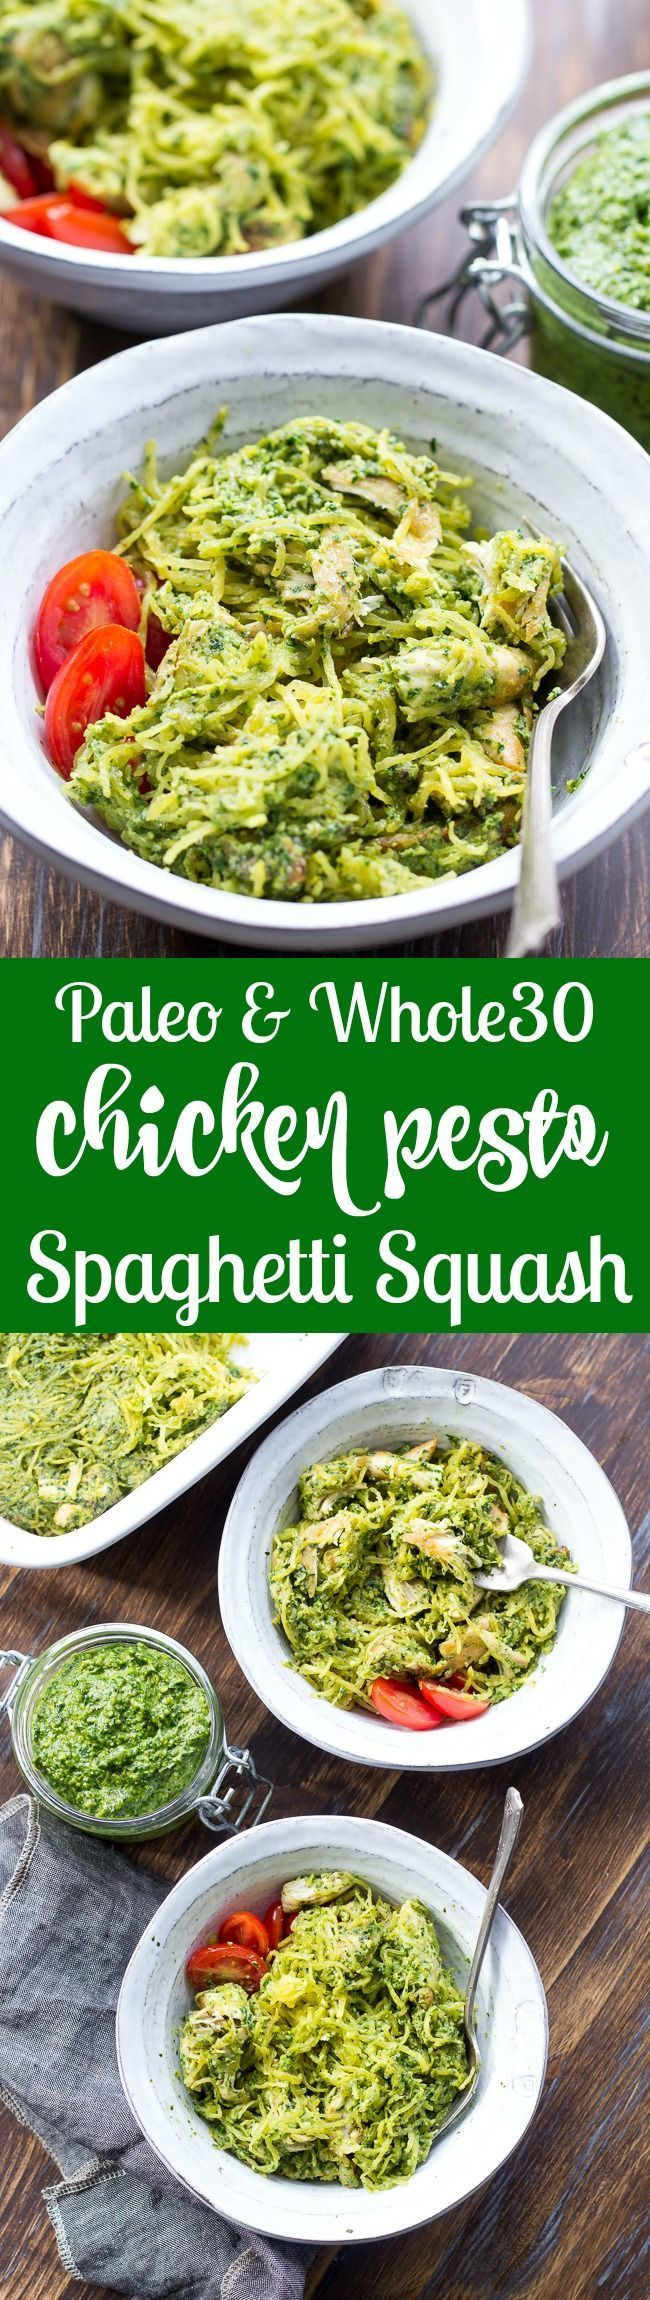 Perfectly cooked spaghetti squash is tossed with a flavor-packed Paleo & Whole30 pesto and seasoned chicken for a healthy filling meal even squash haters will love! This Paleo spaghetti squash dinner makes great leftovers too! Whole30, dairy free and low carb.